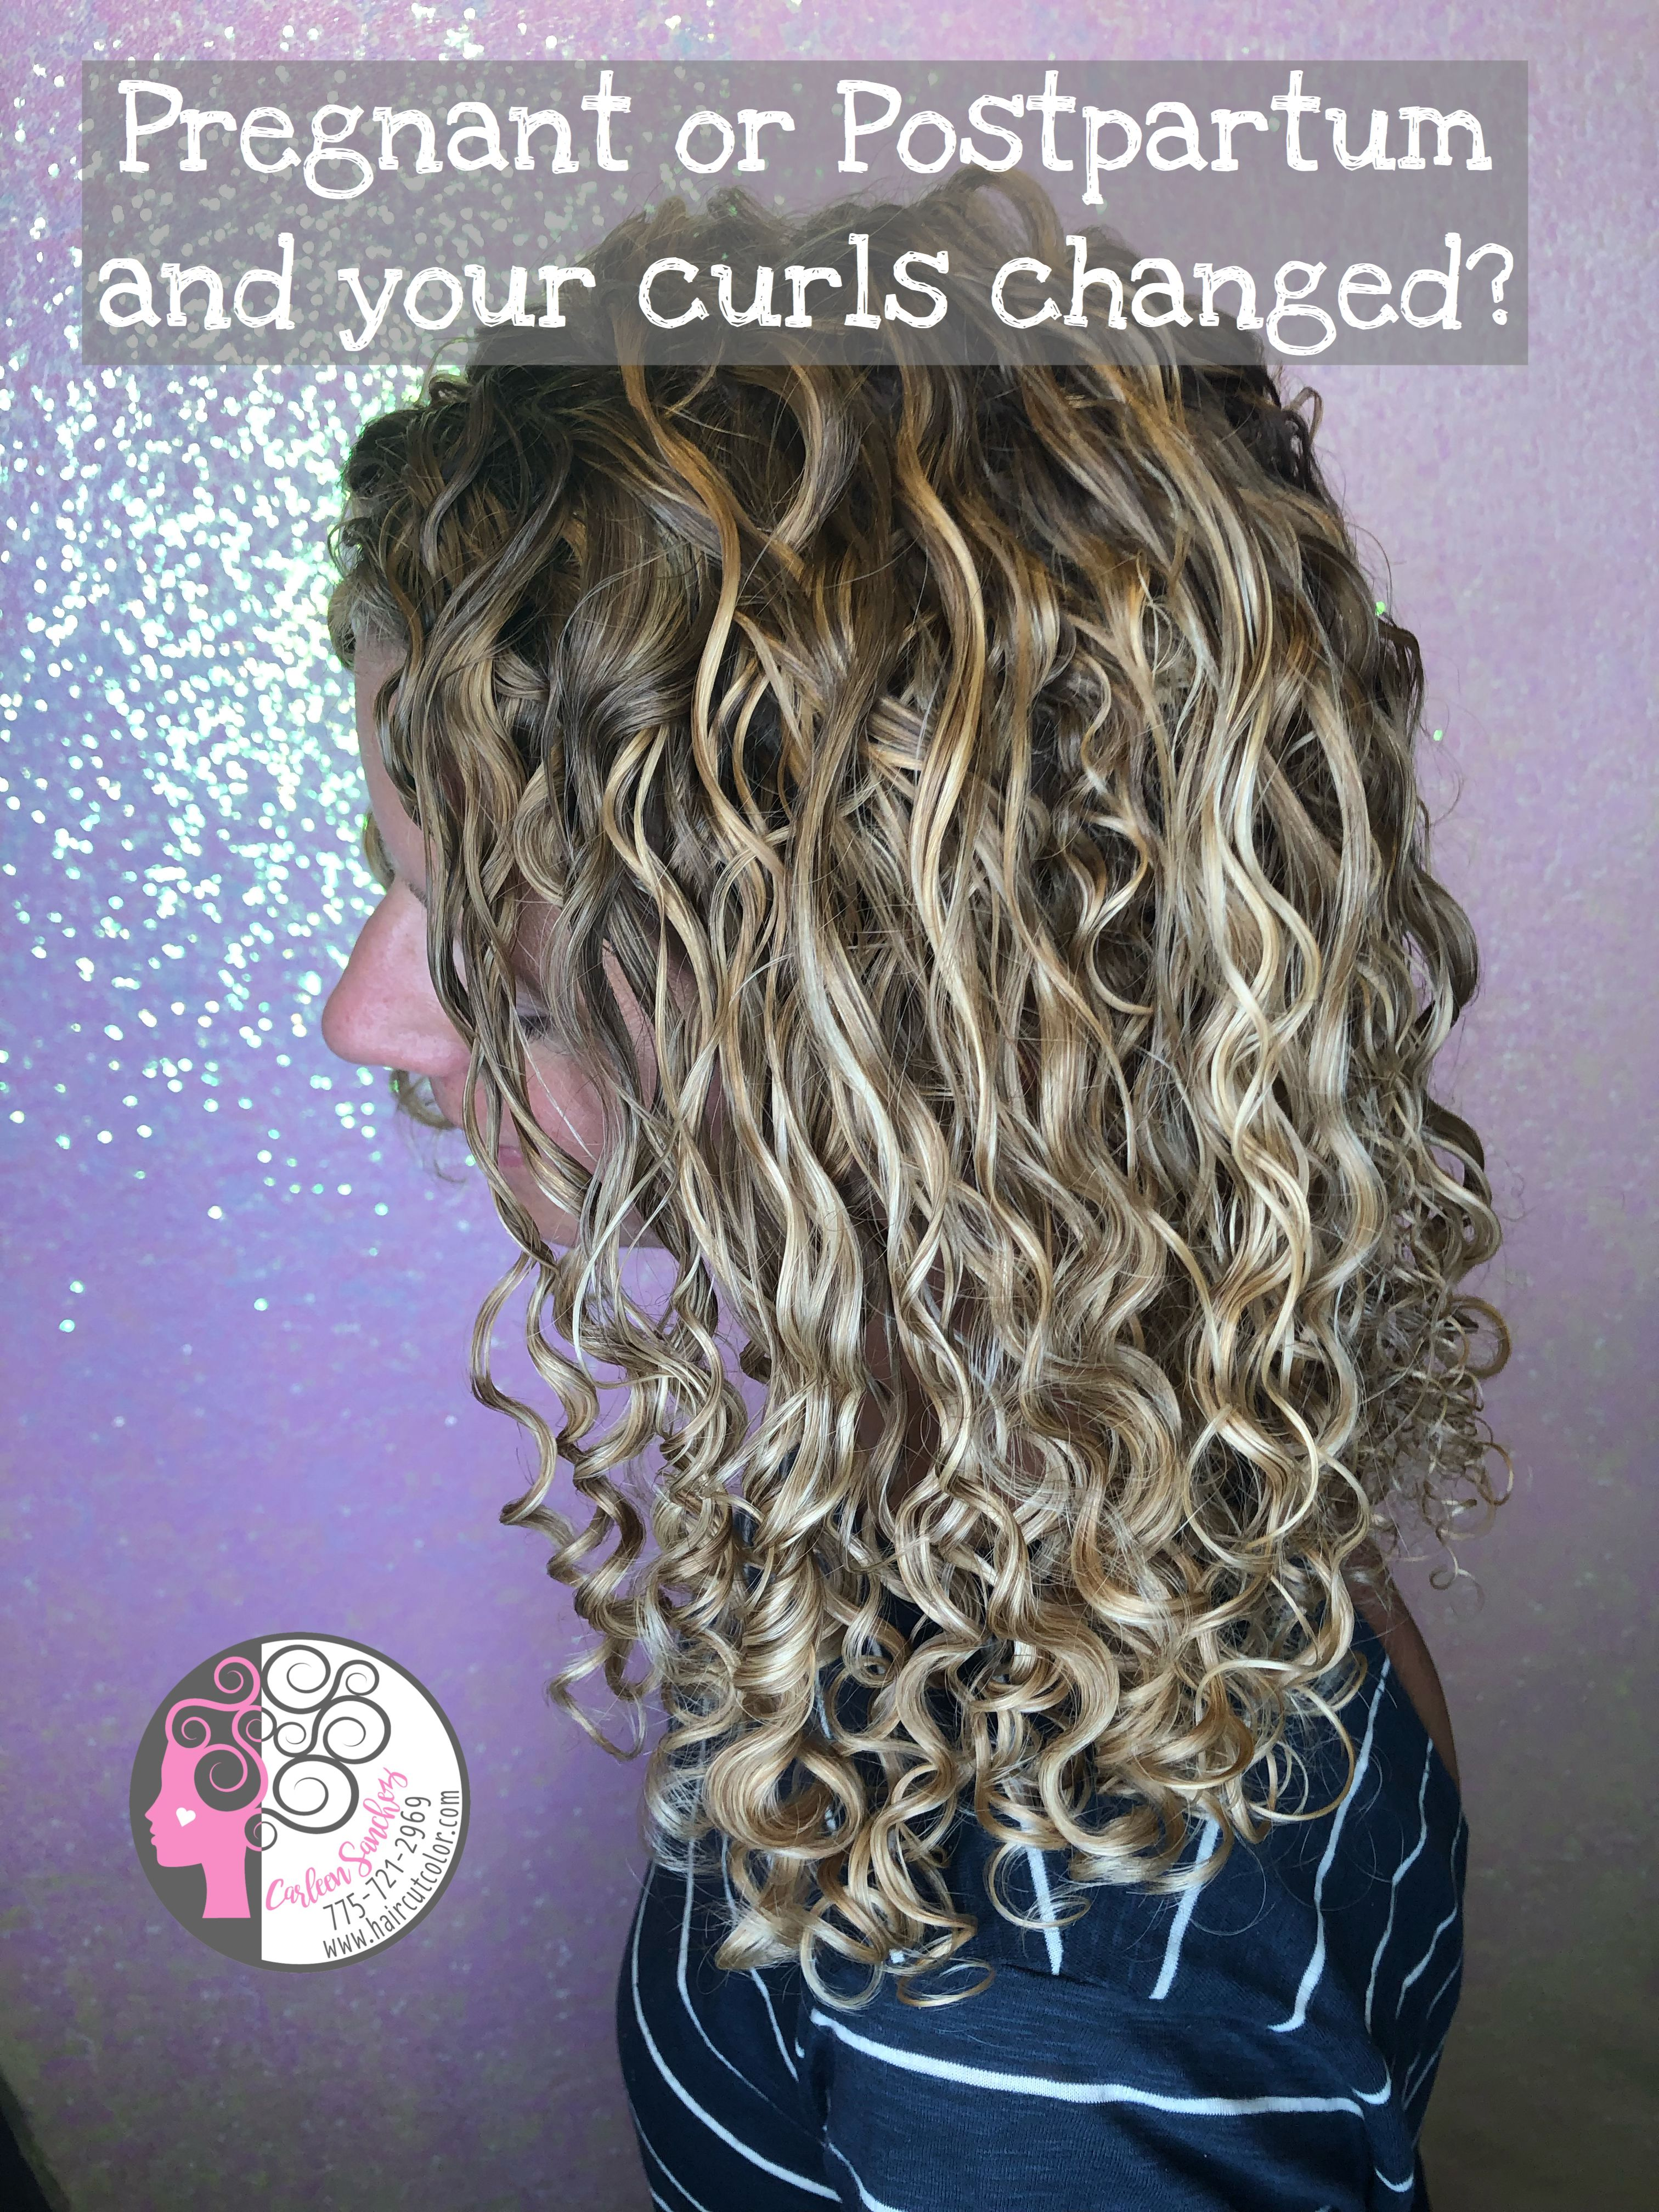 Pin On Curly Hair And Color Artistry By Carleen Sanchez